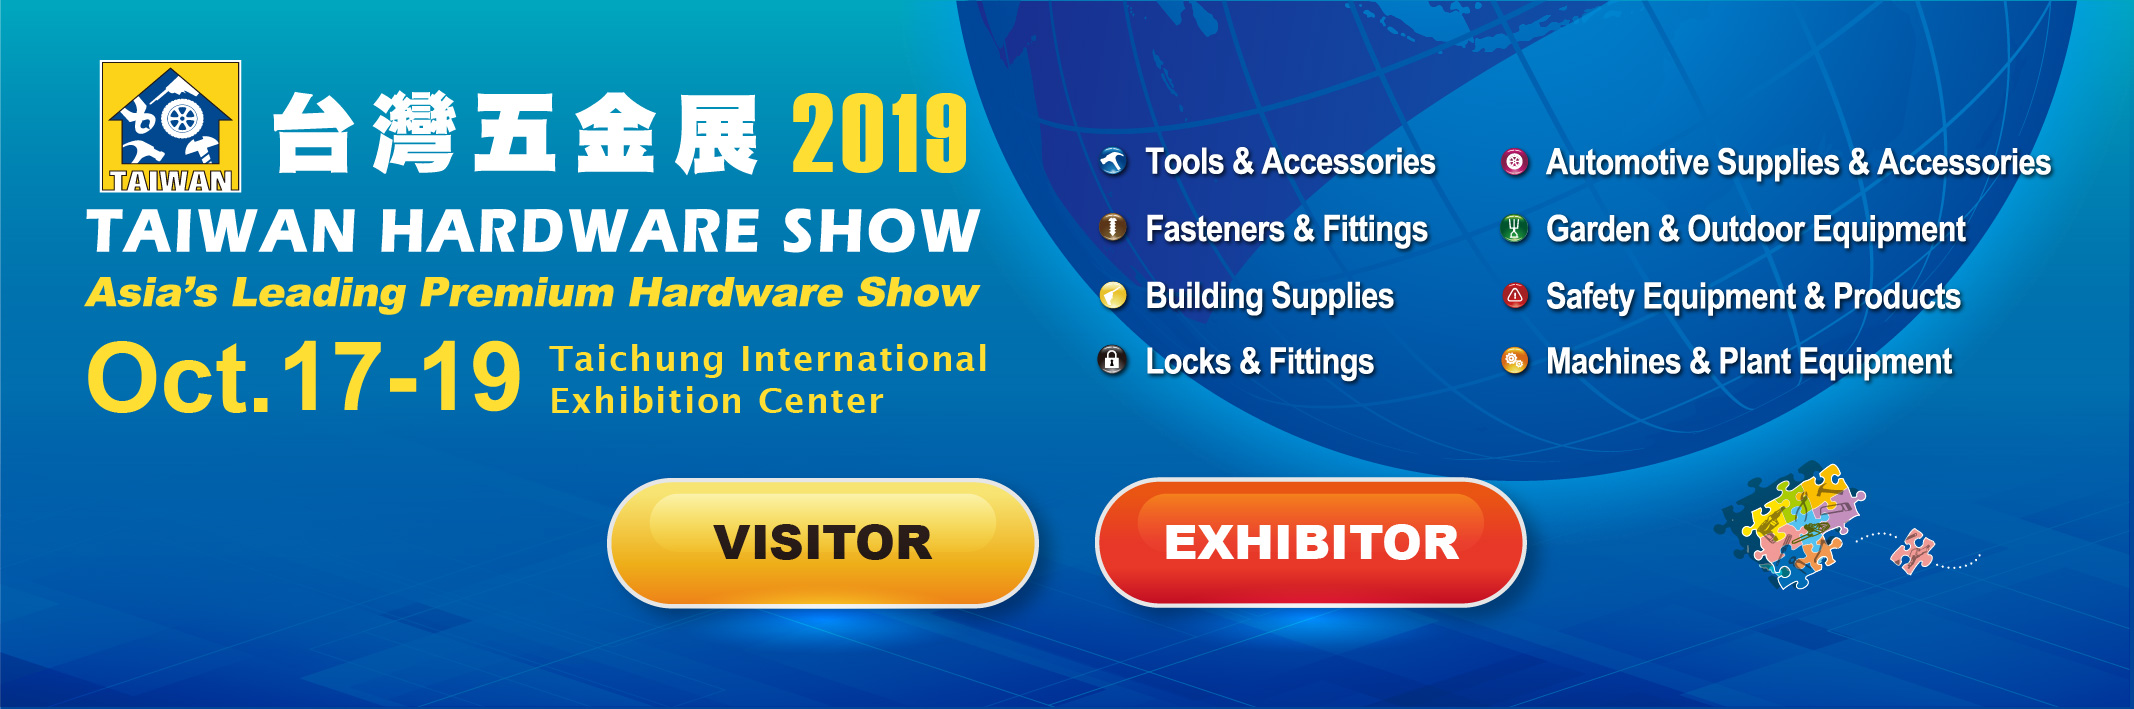 Taiwan Hardware Show | Construction Trade Shows Events and